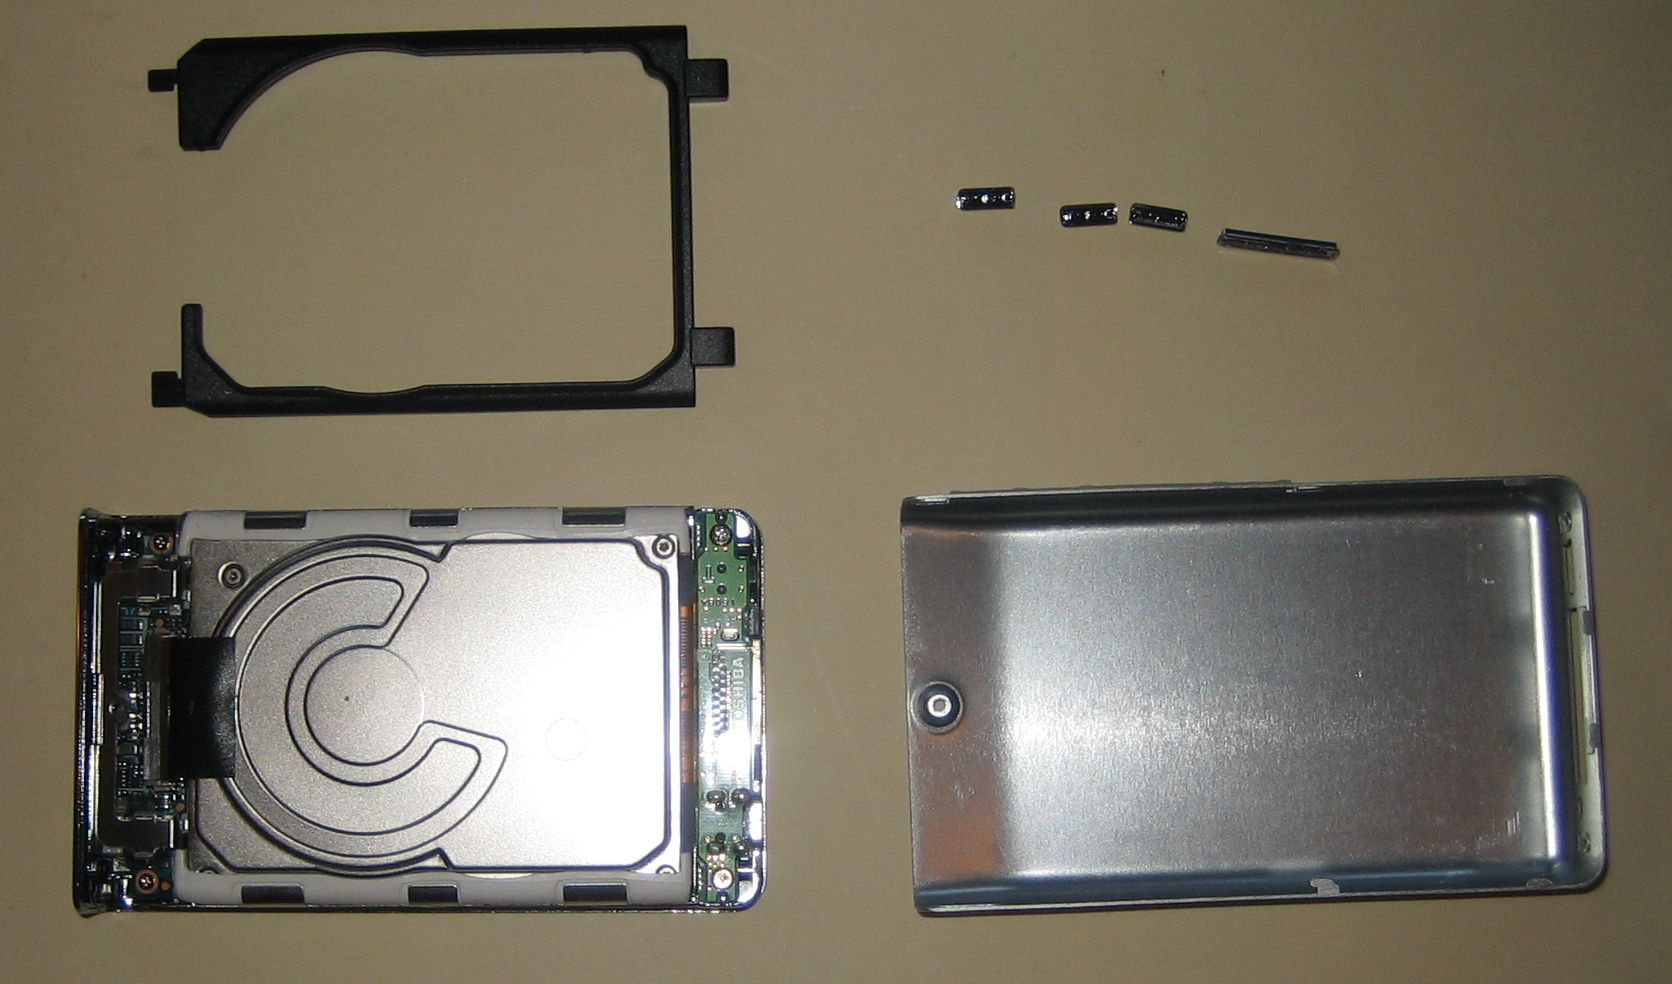 X60 Back Cover Removed